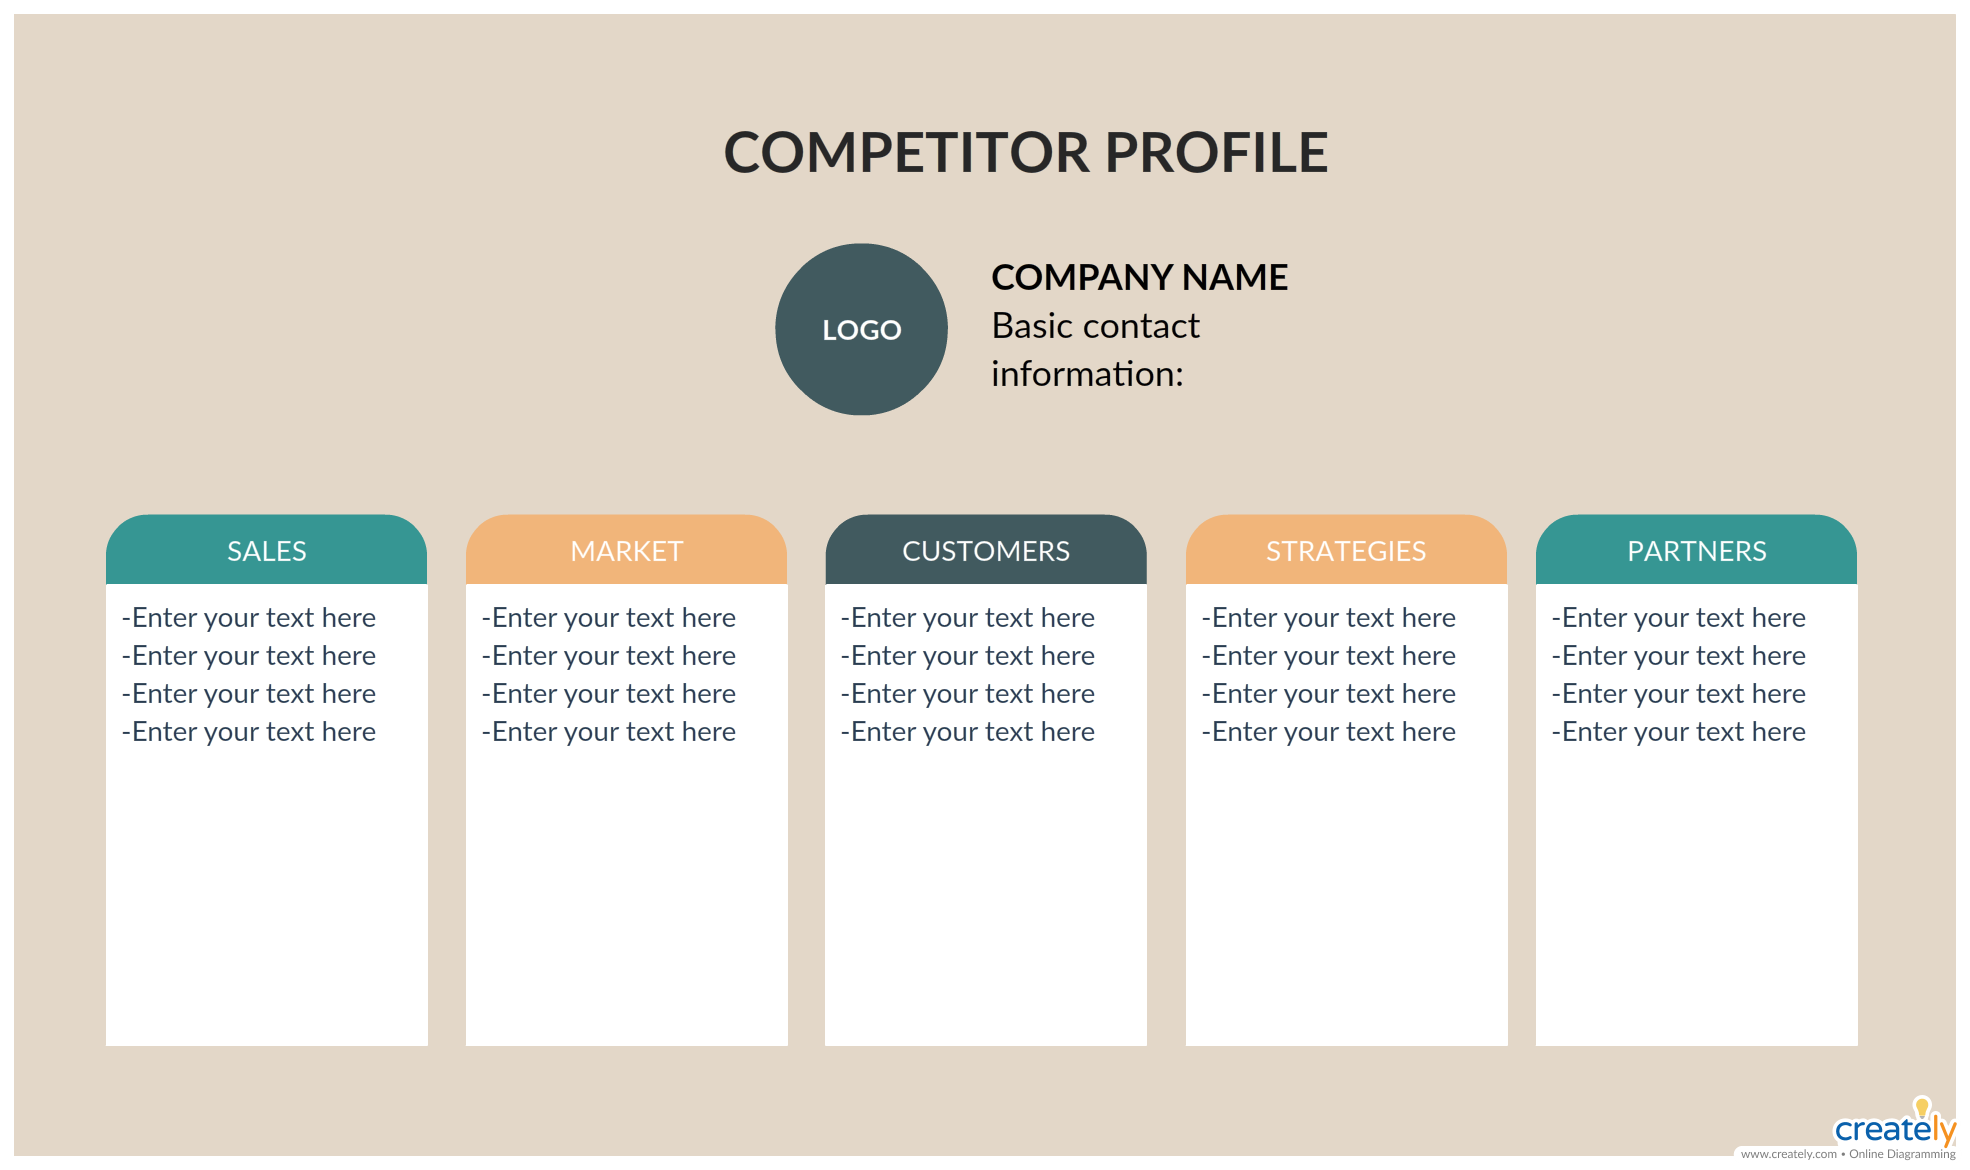 Competitor profile template to organize and analyze the